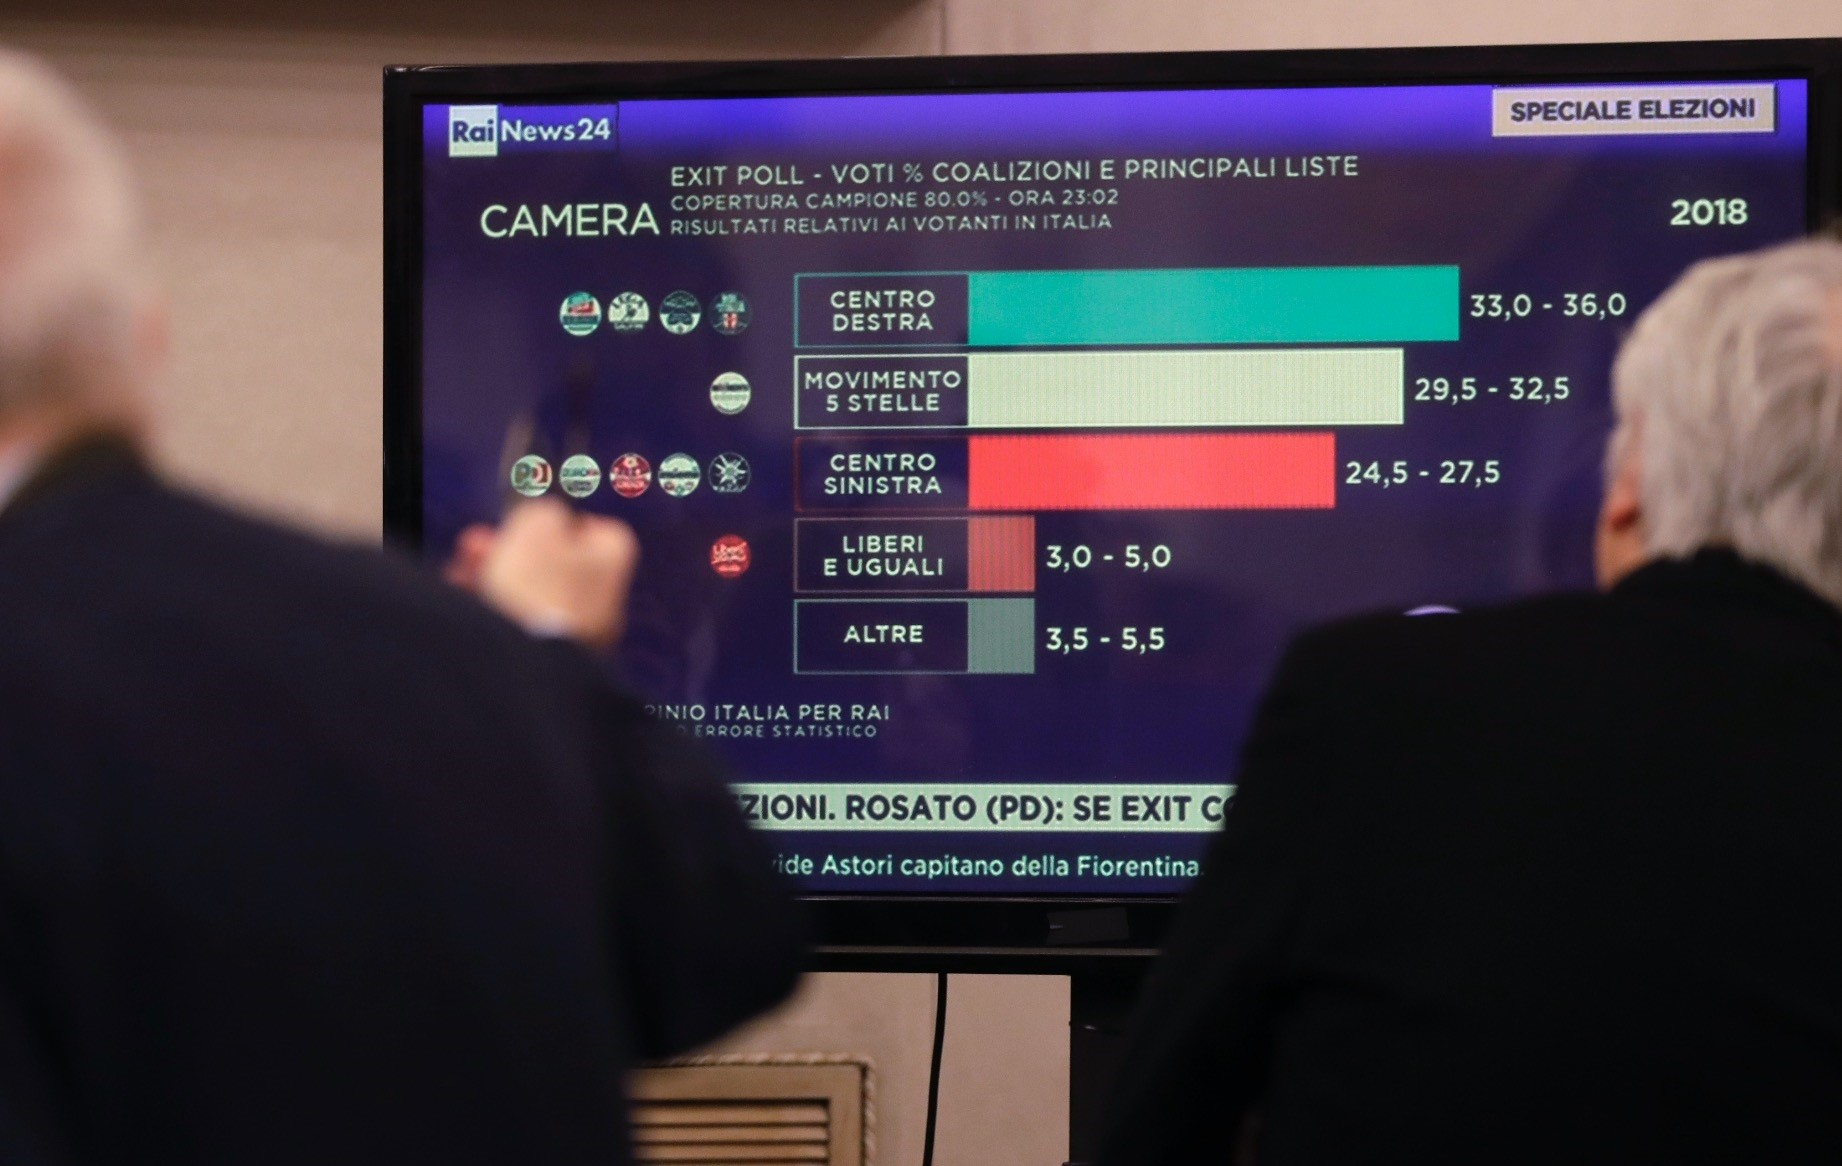 Journalists look at the first exit polls after polling stations closed at the electoral headquarters of the Five Star Movement, Rome, March 4.